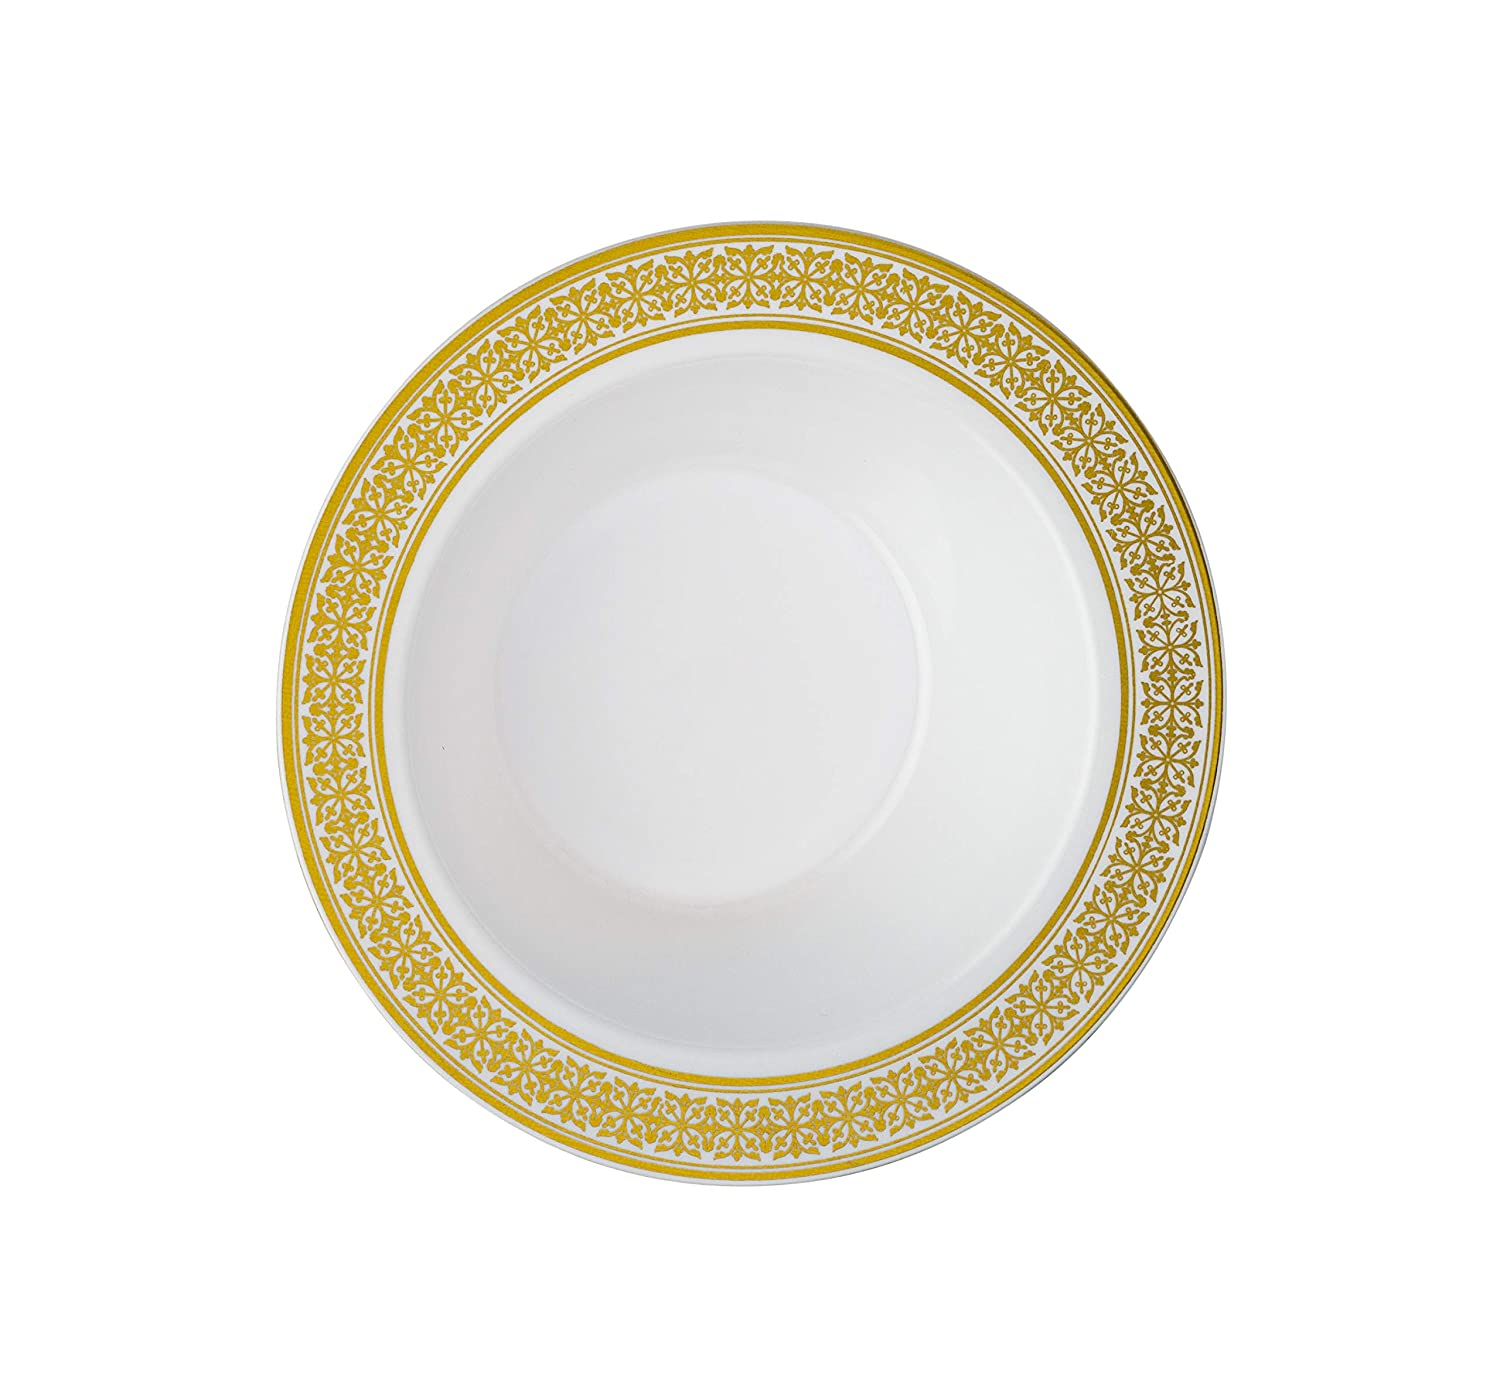 White Silver 20 Sets Laura Stein Elegant Plates Bowls 1 Combo Pack 40 Bowls